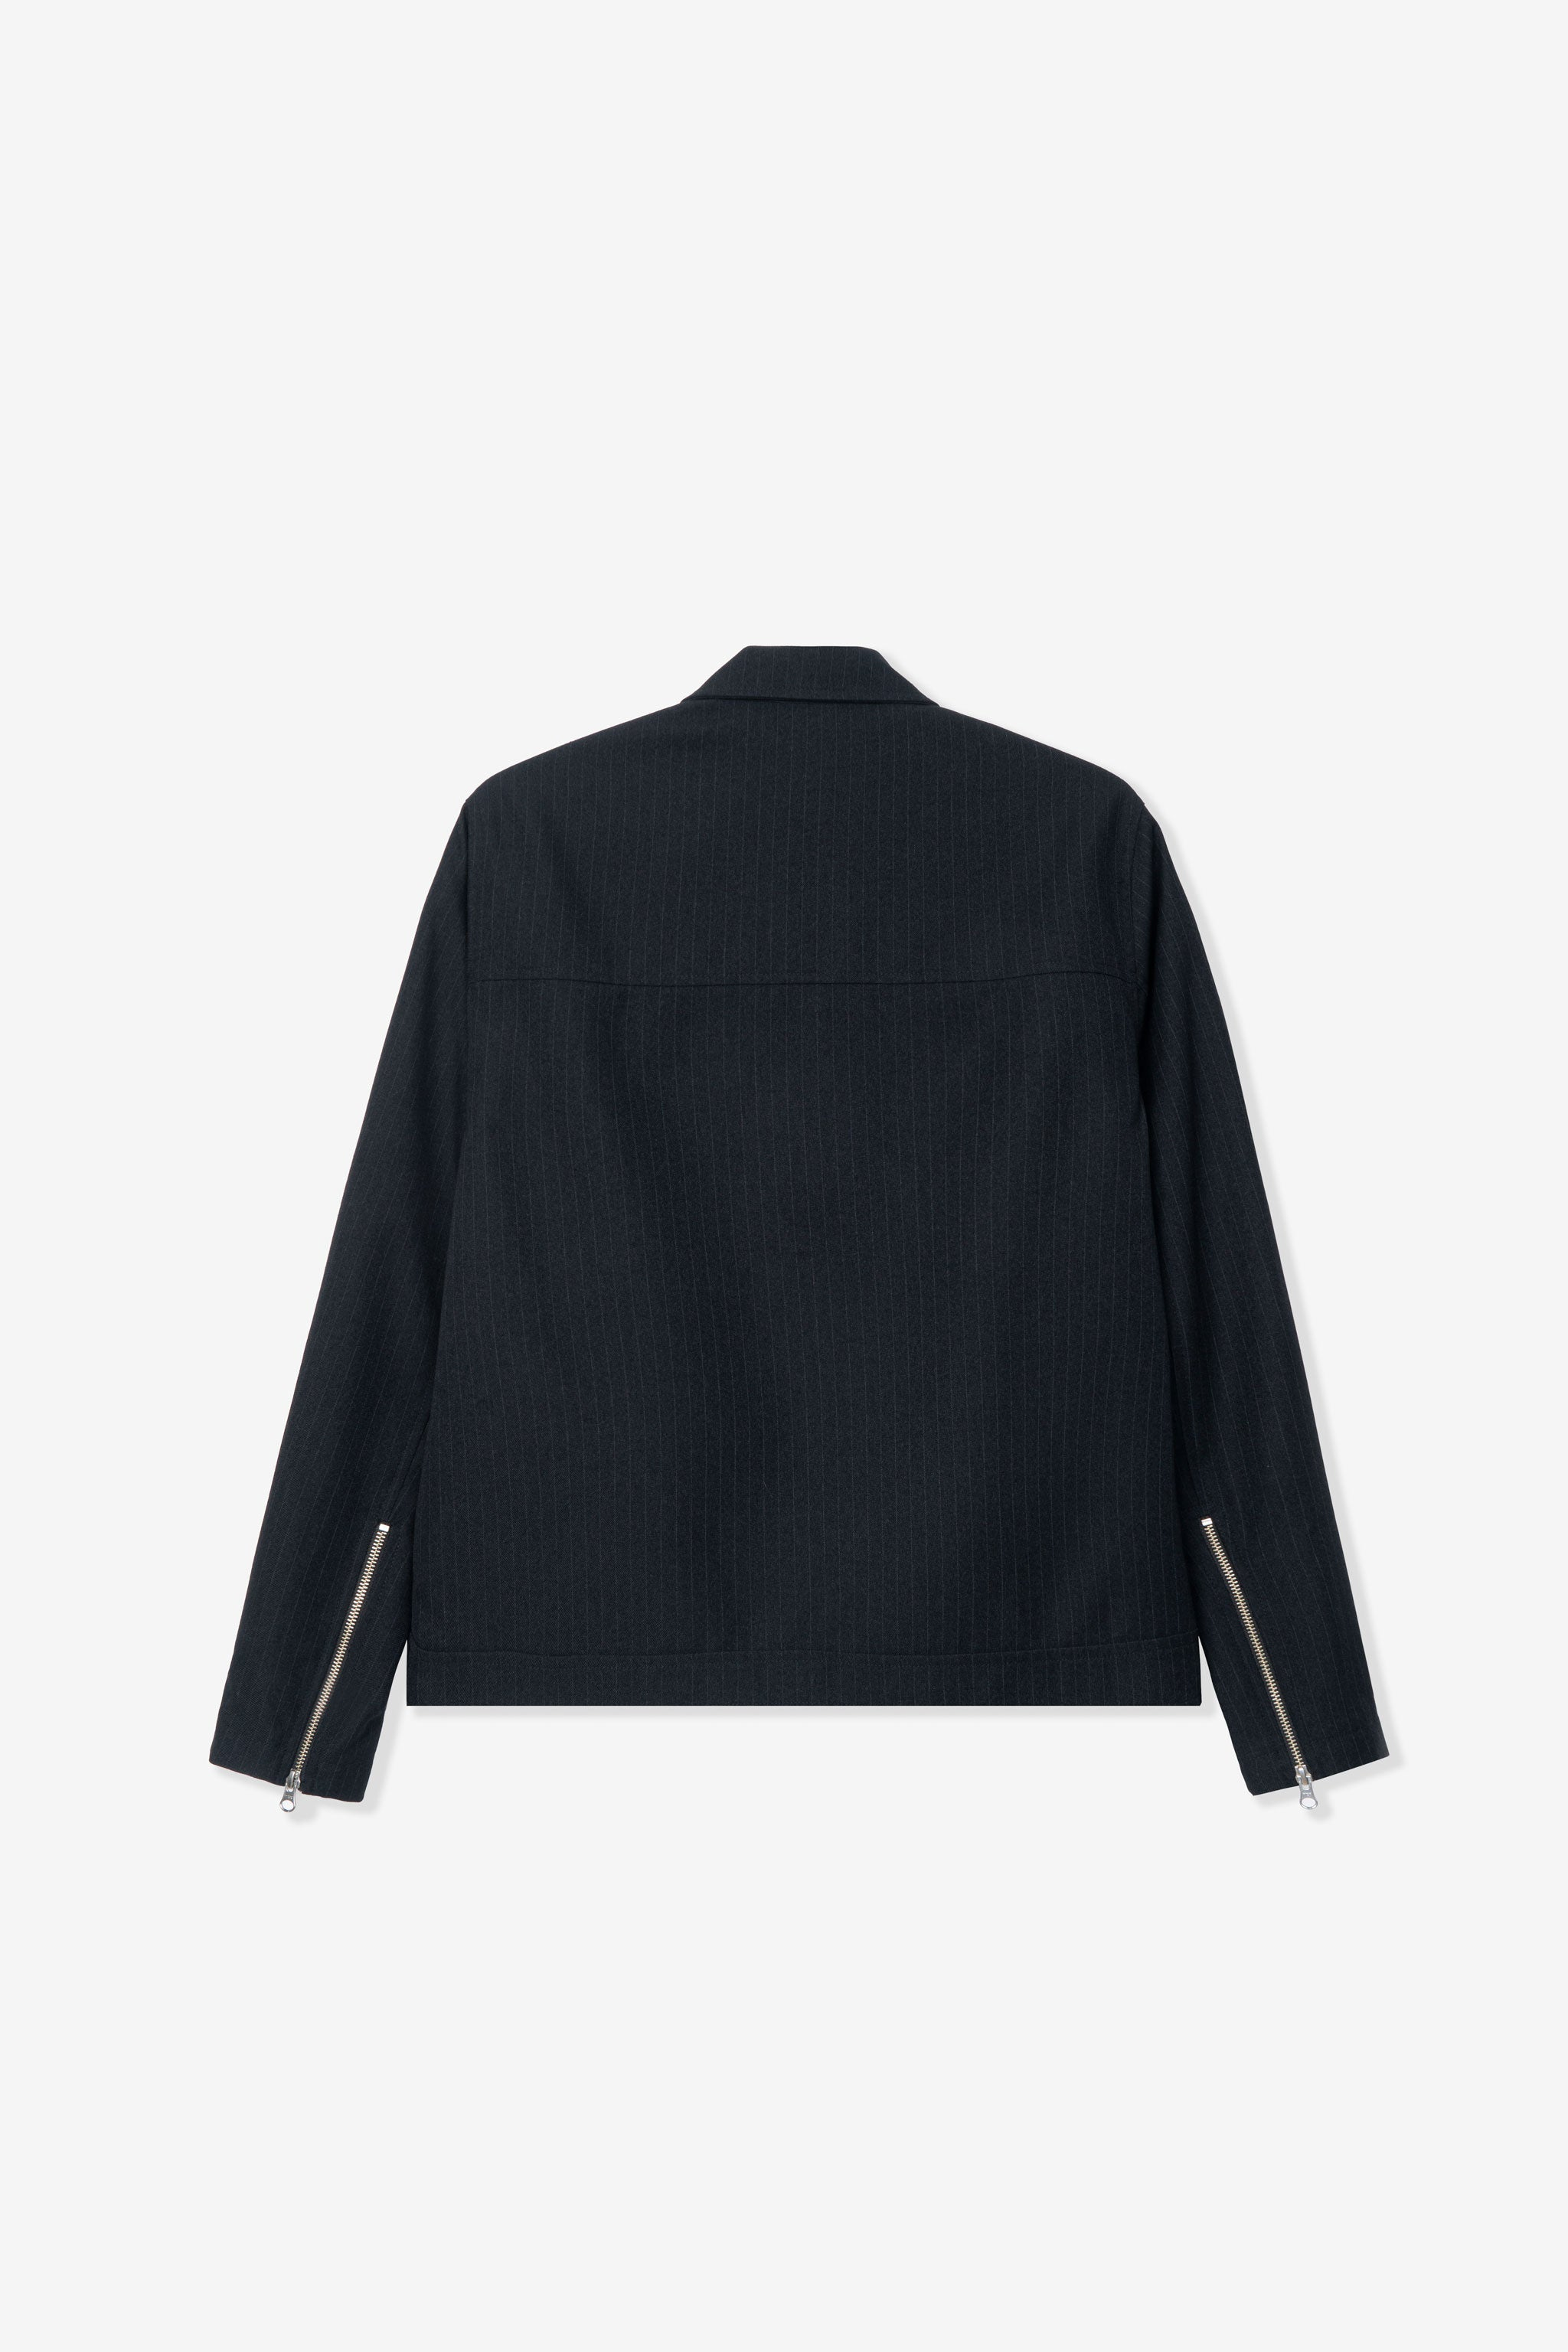 Goodfight FTW Jacket - Dover Street Market Ginza Exclusive